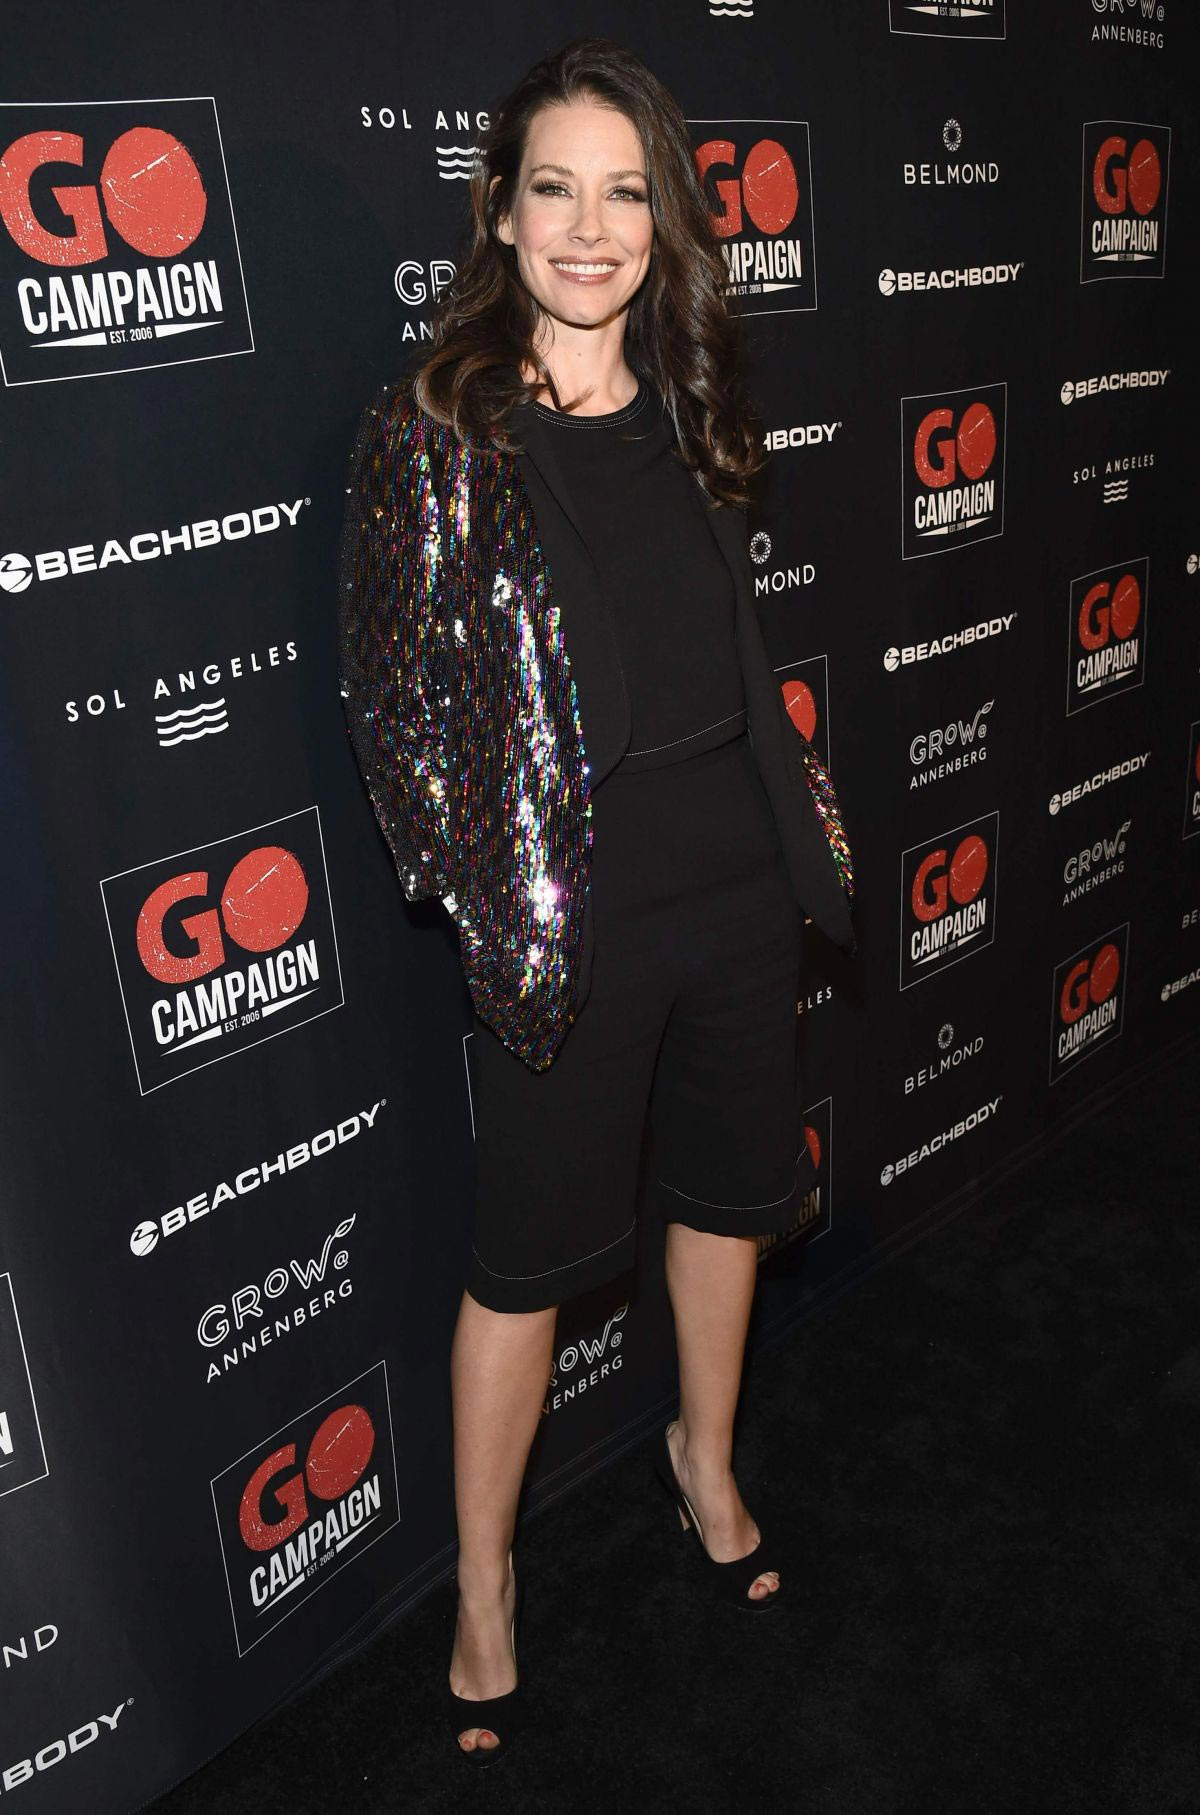 Evangeline Lilly at GO Campaign Gala in Los Angeles 2018/10/20 1